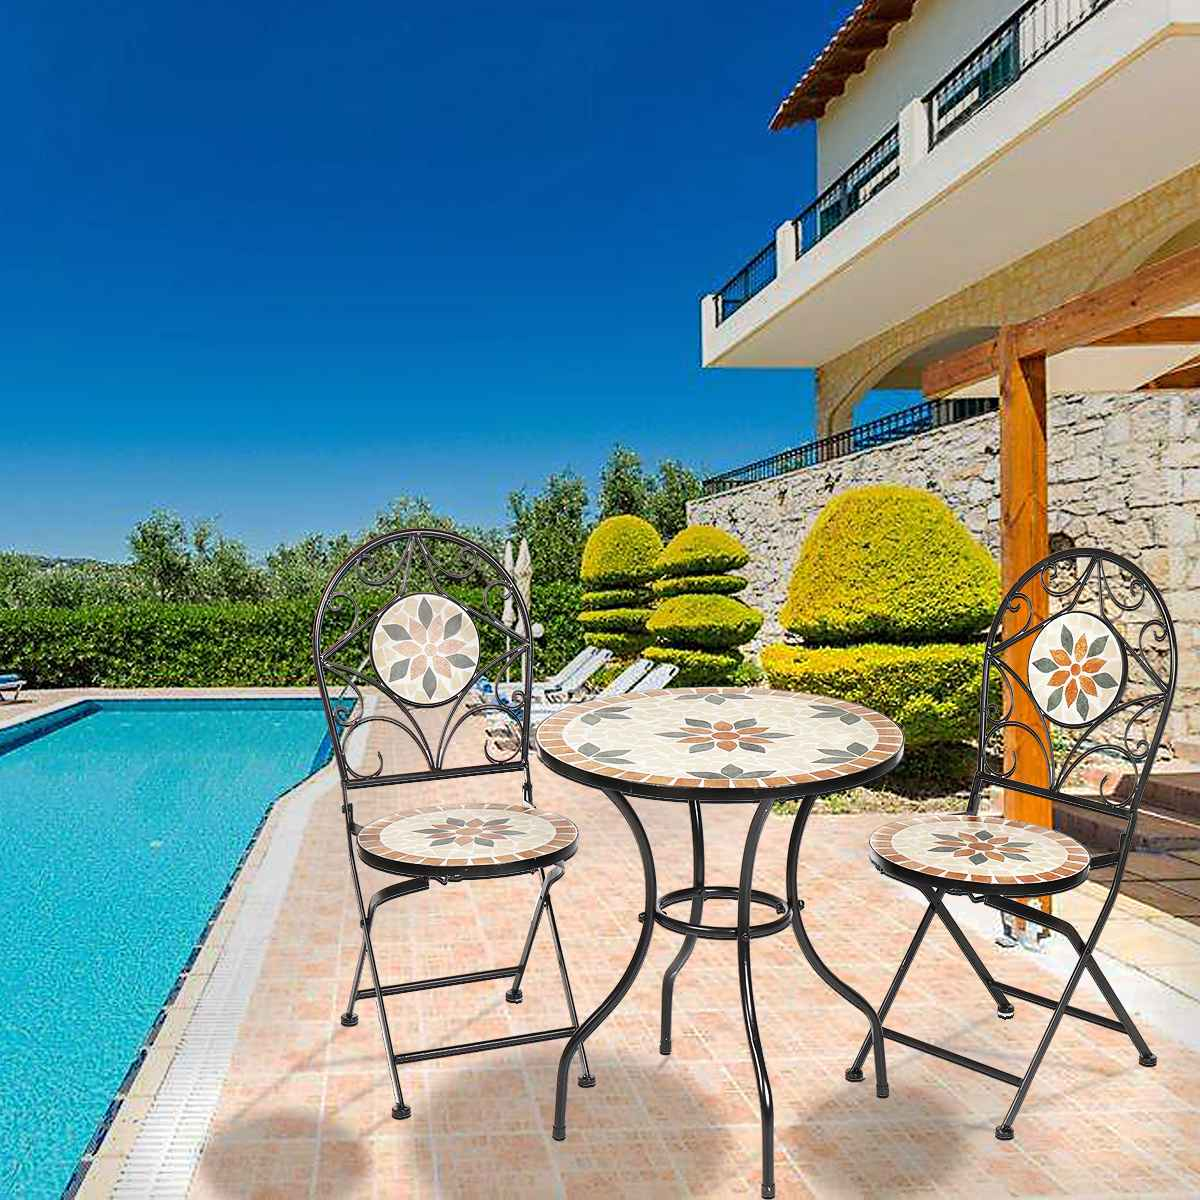 NEW 3Pcs/Set Garden Furniture Dining Set Iron Floral Pattern Design Bistro Patio Set Round Table and 2XFoldable Chairs